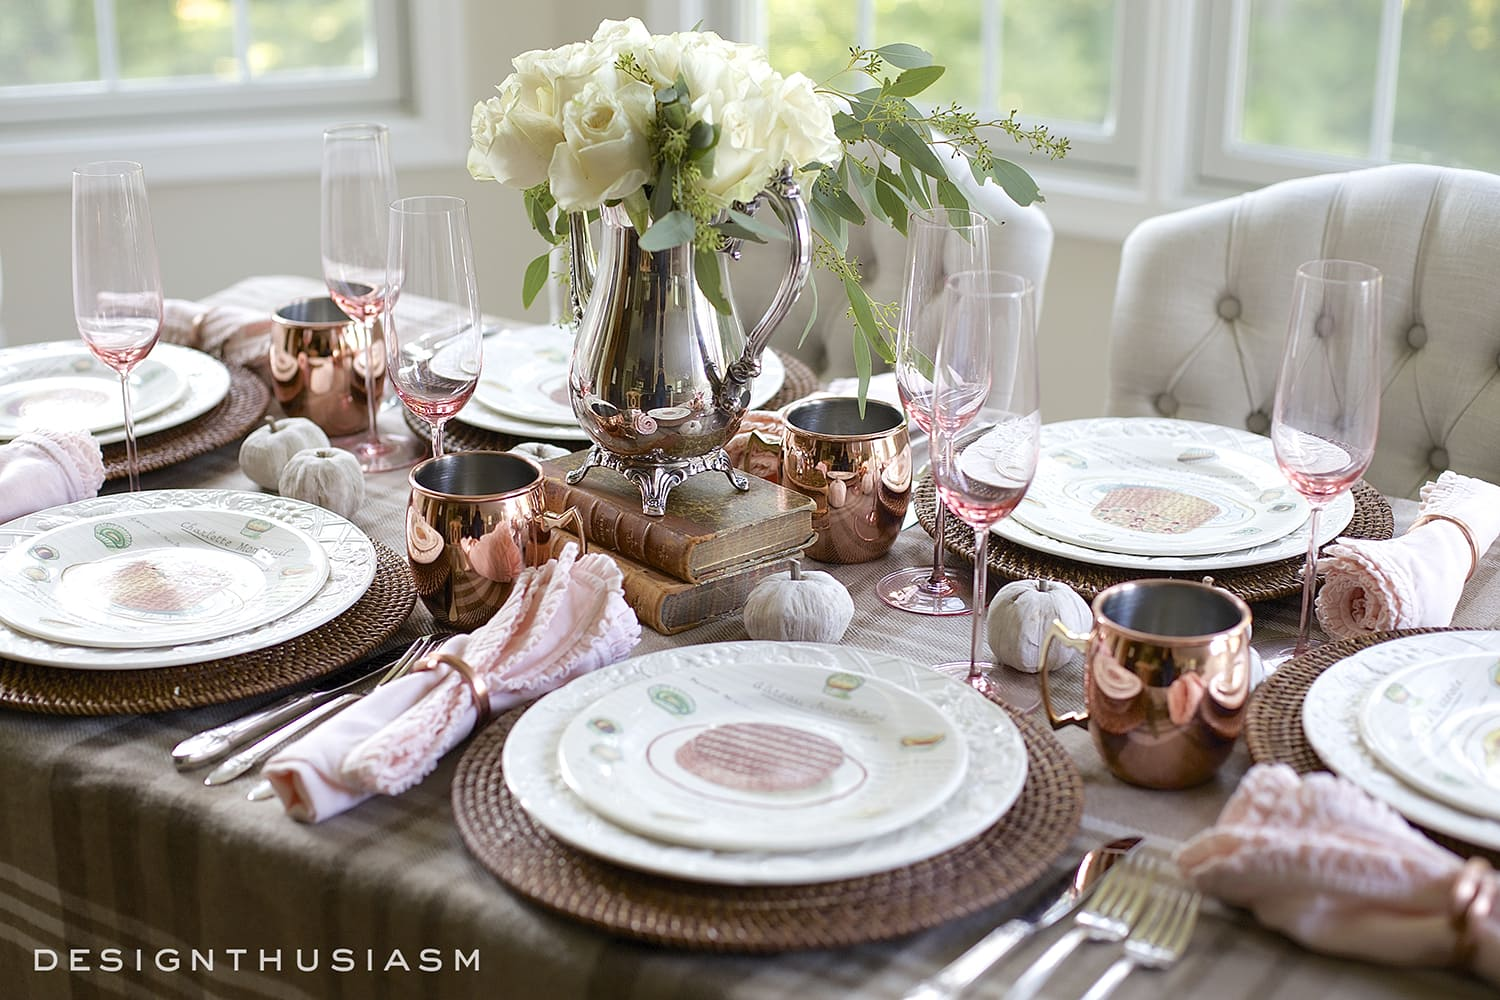 seasonal-tablescaping-with-designthusiasm-02